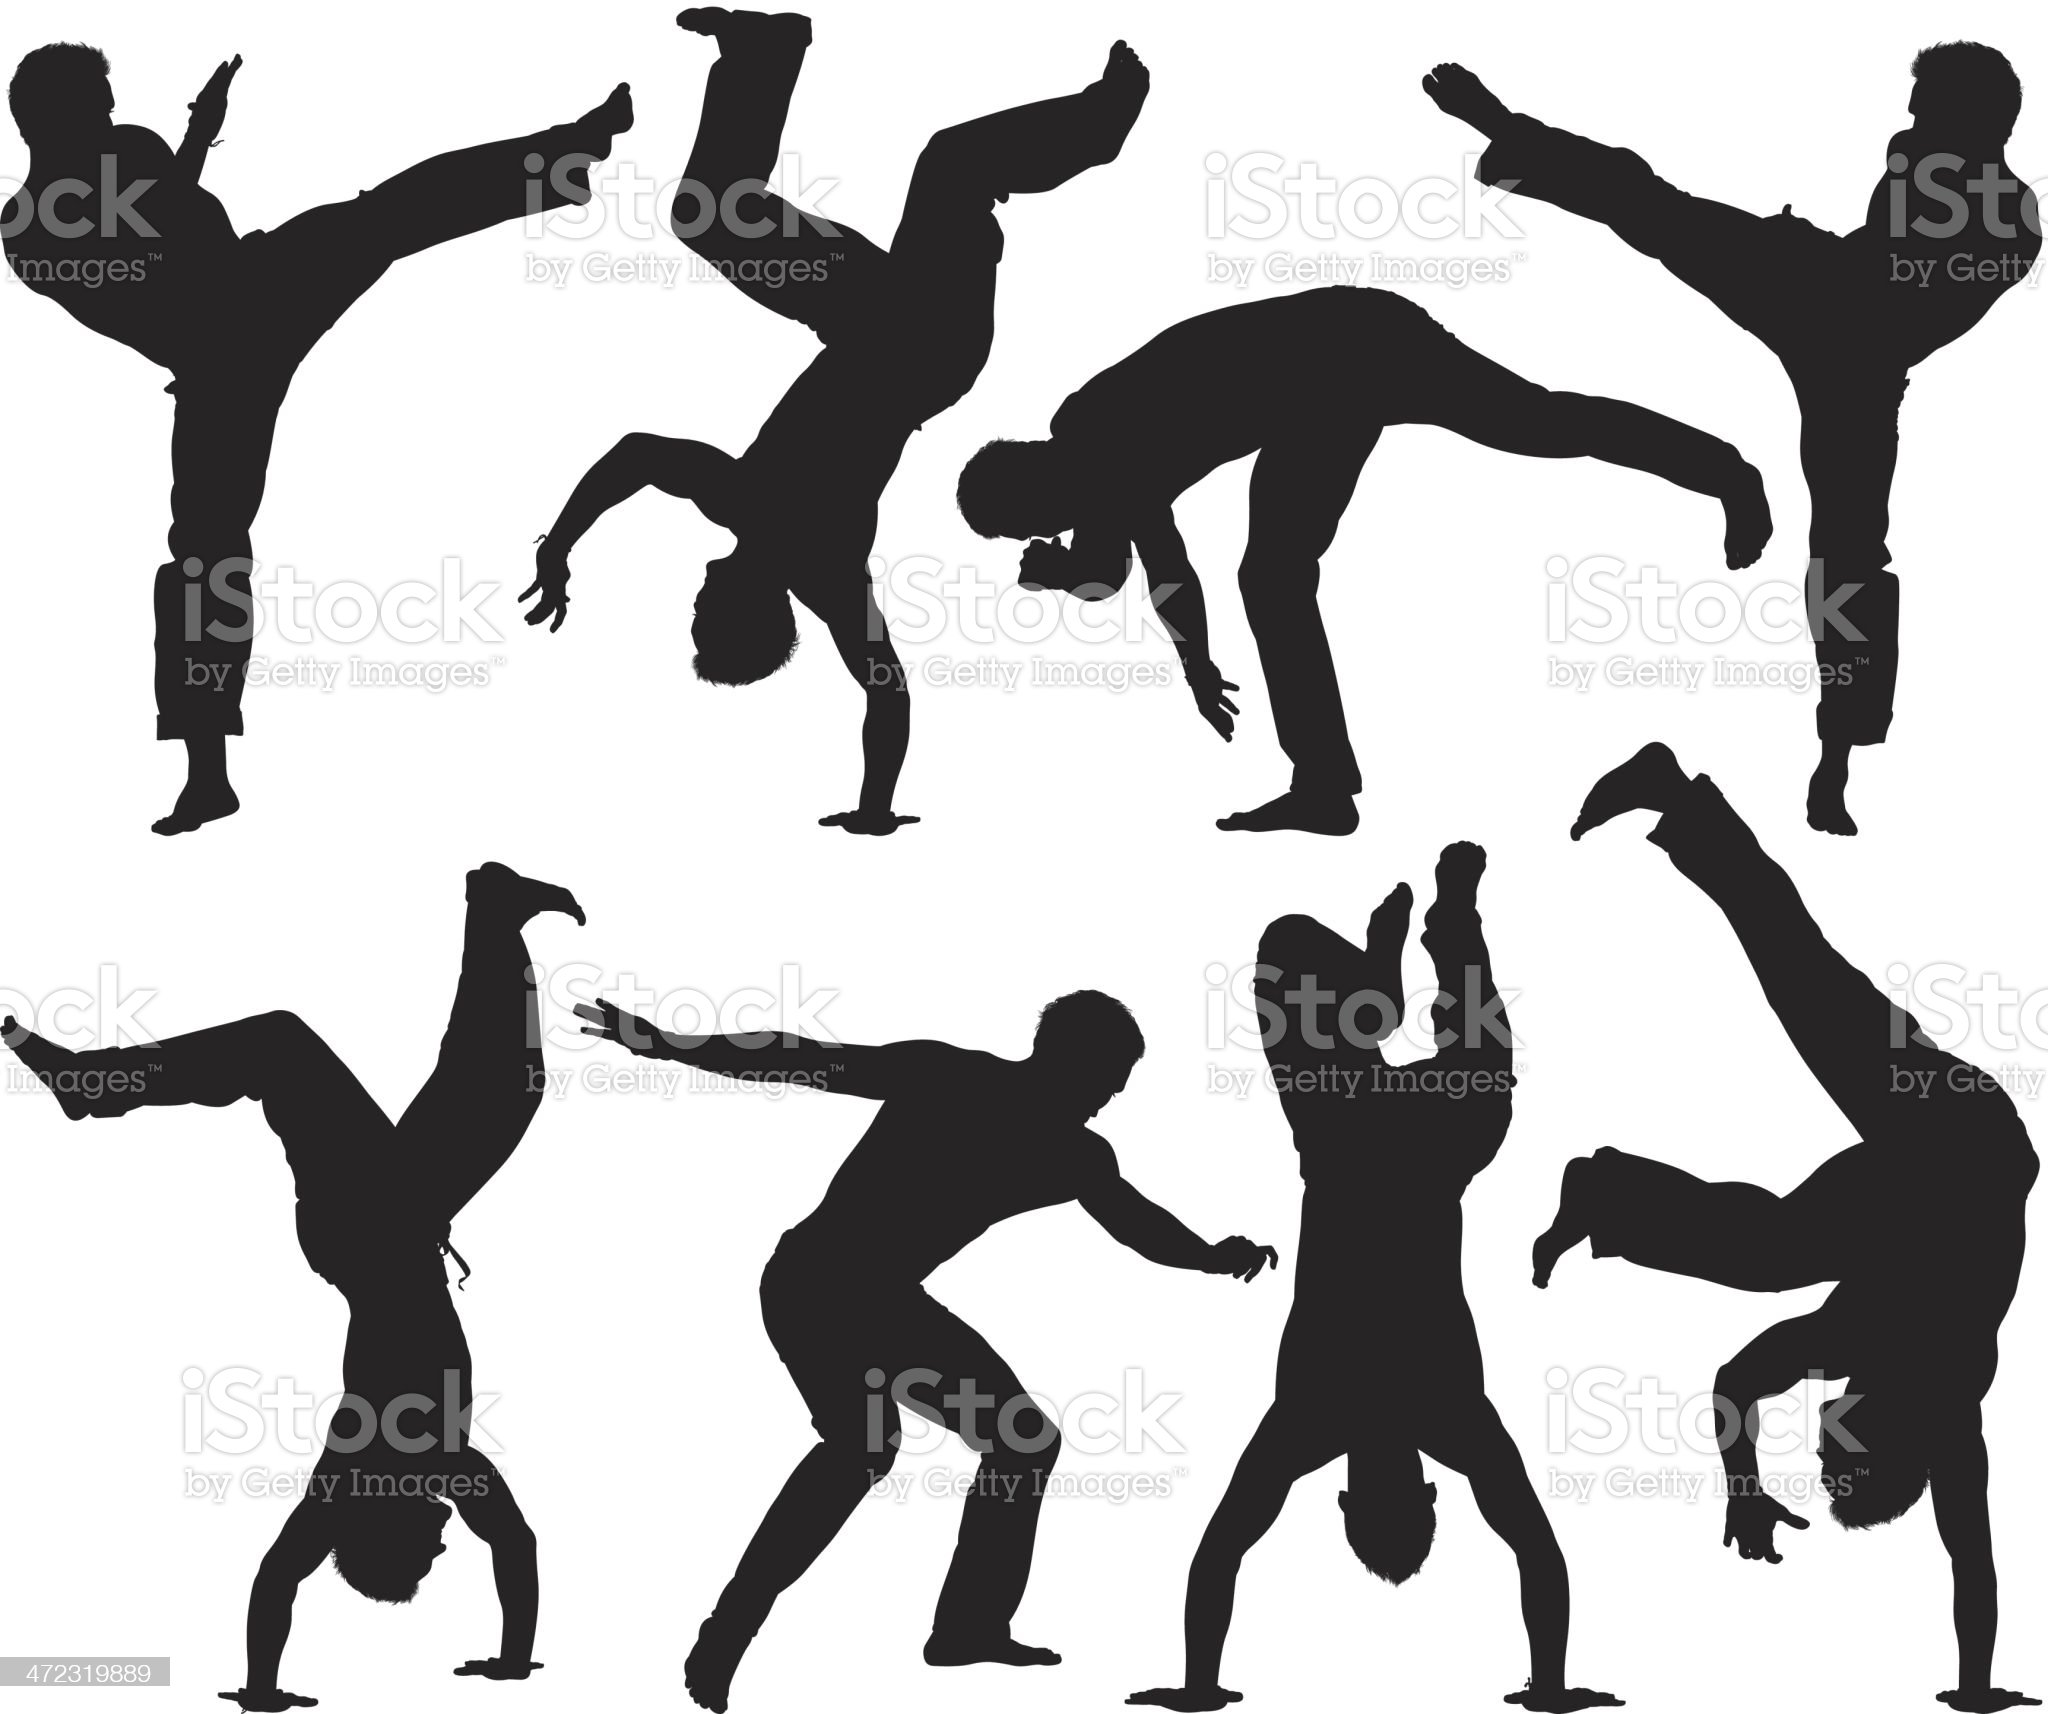 Multiple silhouettes of a man practicing capoeira royalty-free stock vector art